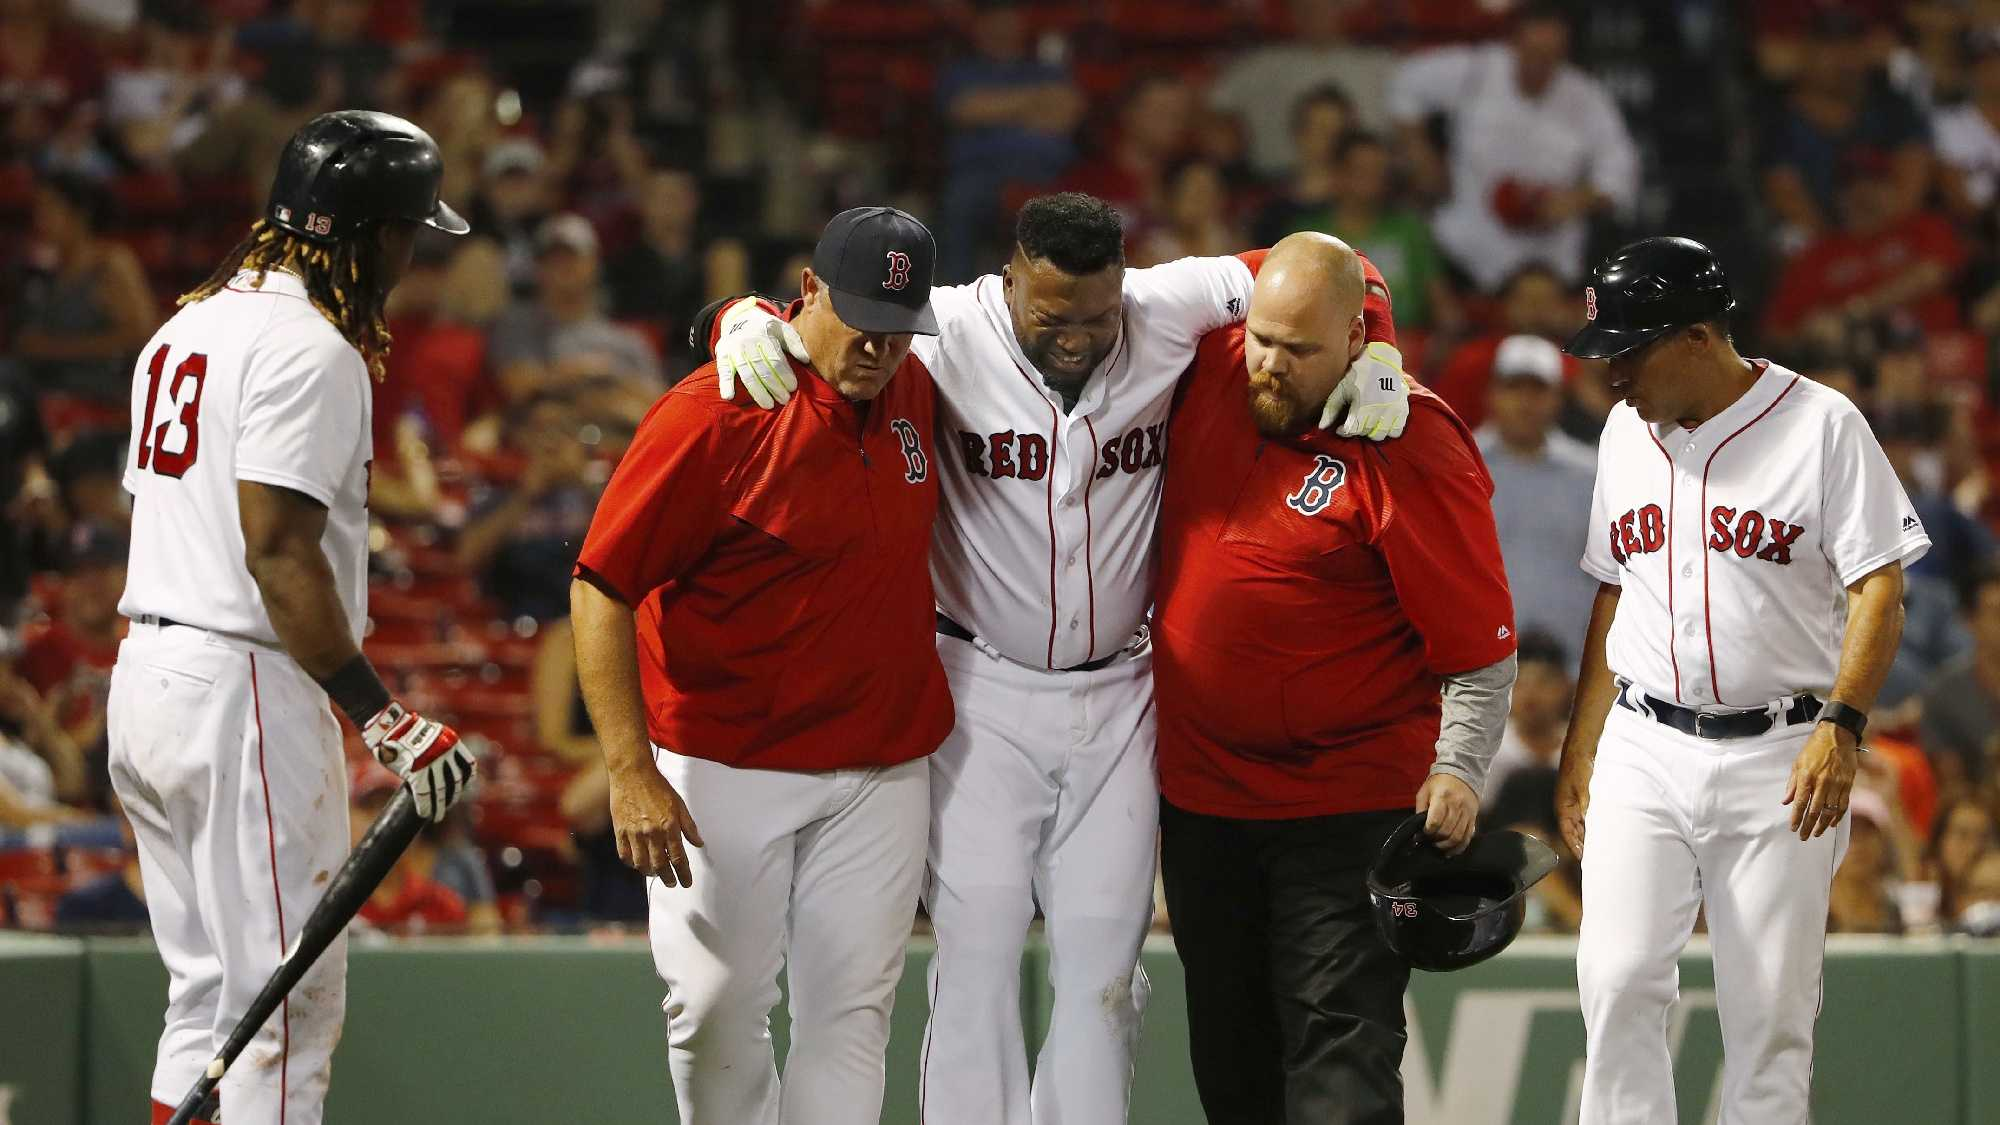 Boston Red Sox designated hitter David Ortiz is helped off the field by a trainer and manager John Farrell, left, as Hanley Ramirez, far left, looks on after fouling a ball off himself during the ninth inning of their 9-4 loss to the New York Yankees in a baseball game at Fenway Park in Boston on Wednesday, Aug. 10, 2016. Boston Red Sox's Bryce Brentz, far left, prepares to hit for Ortiz.